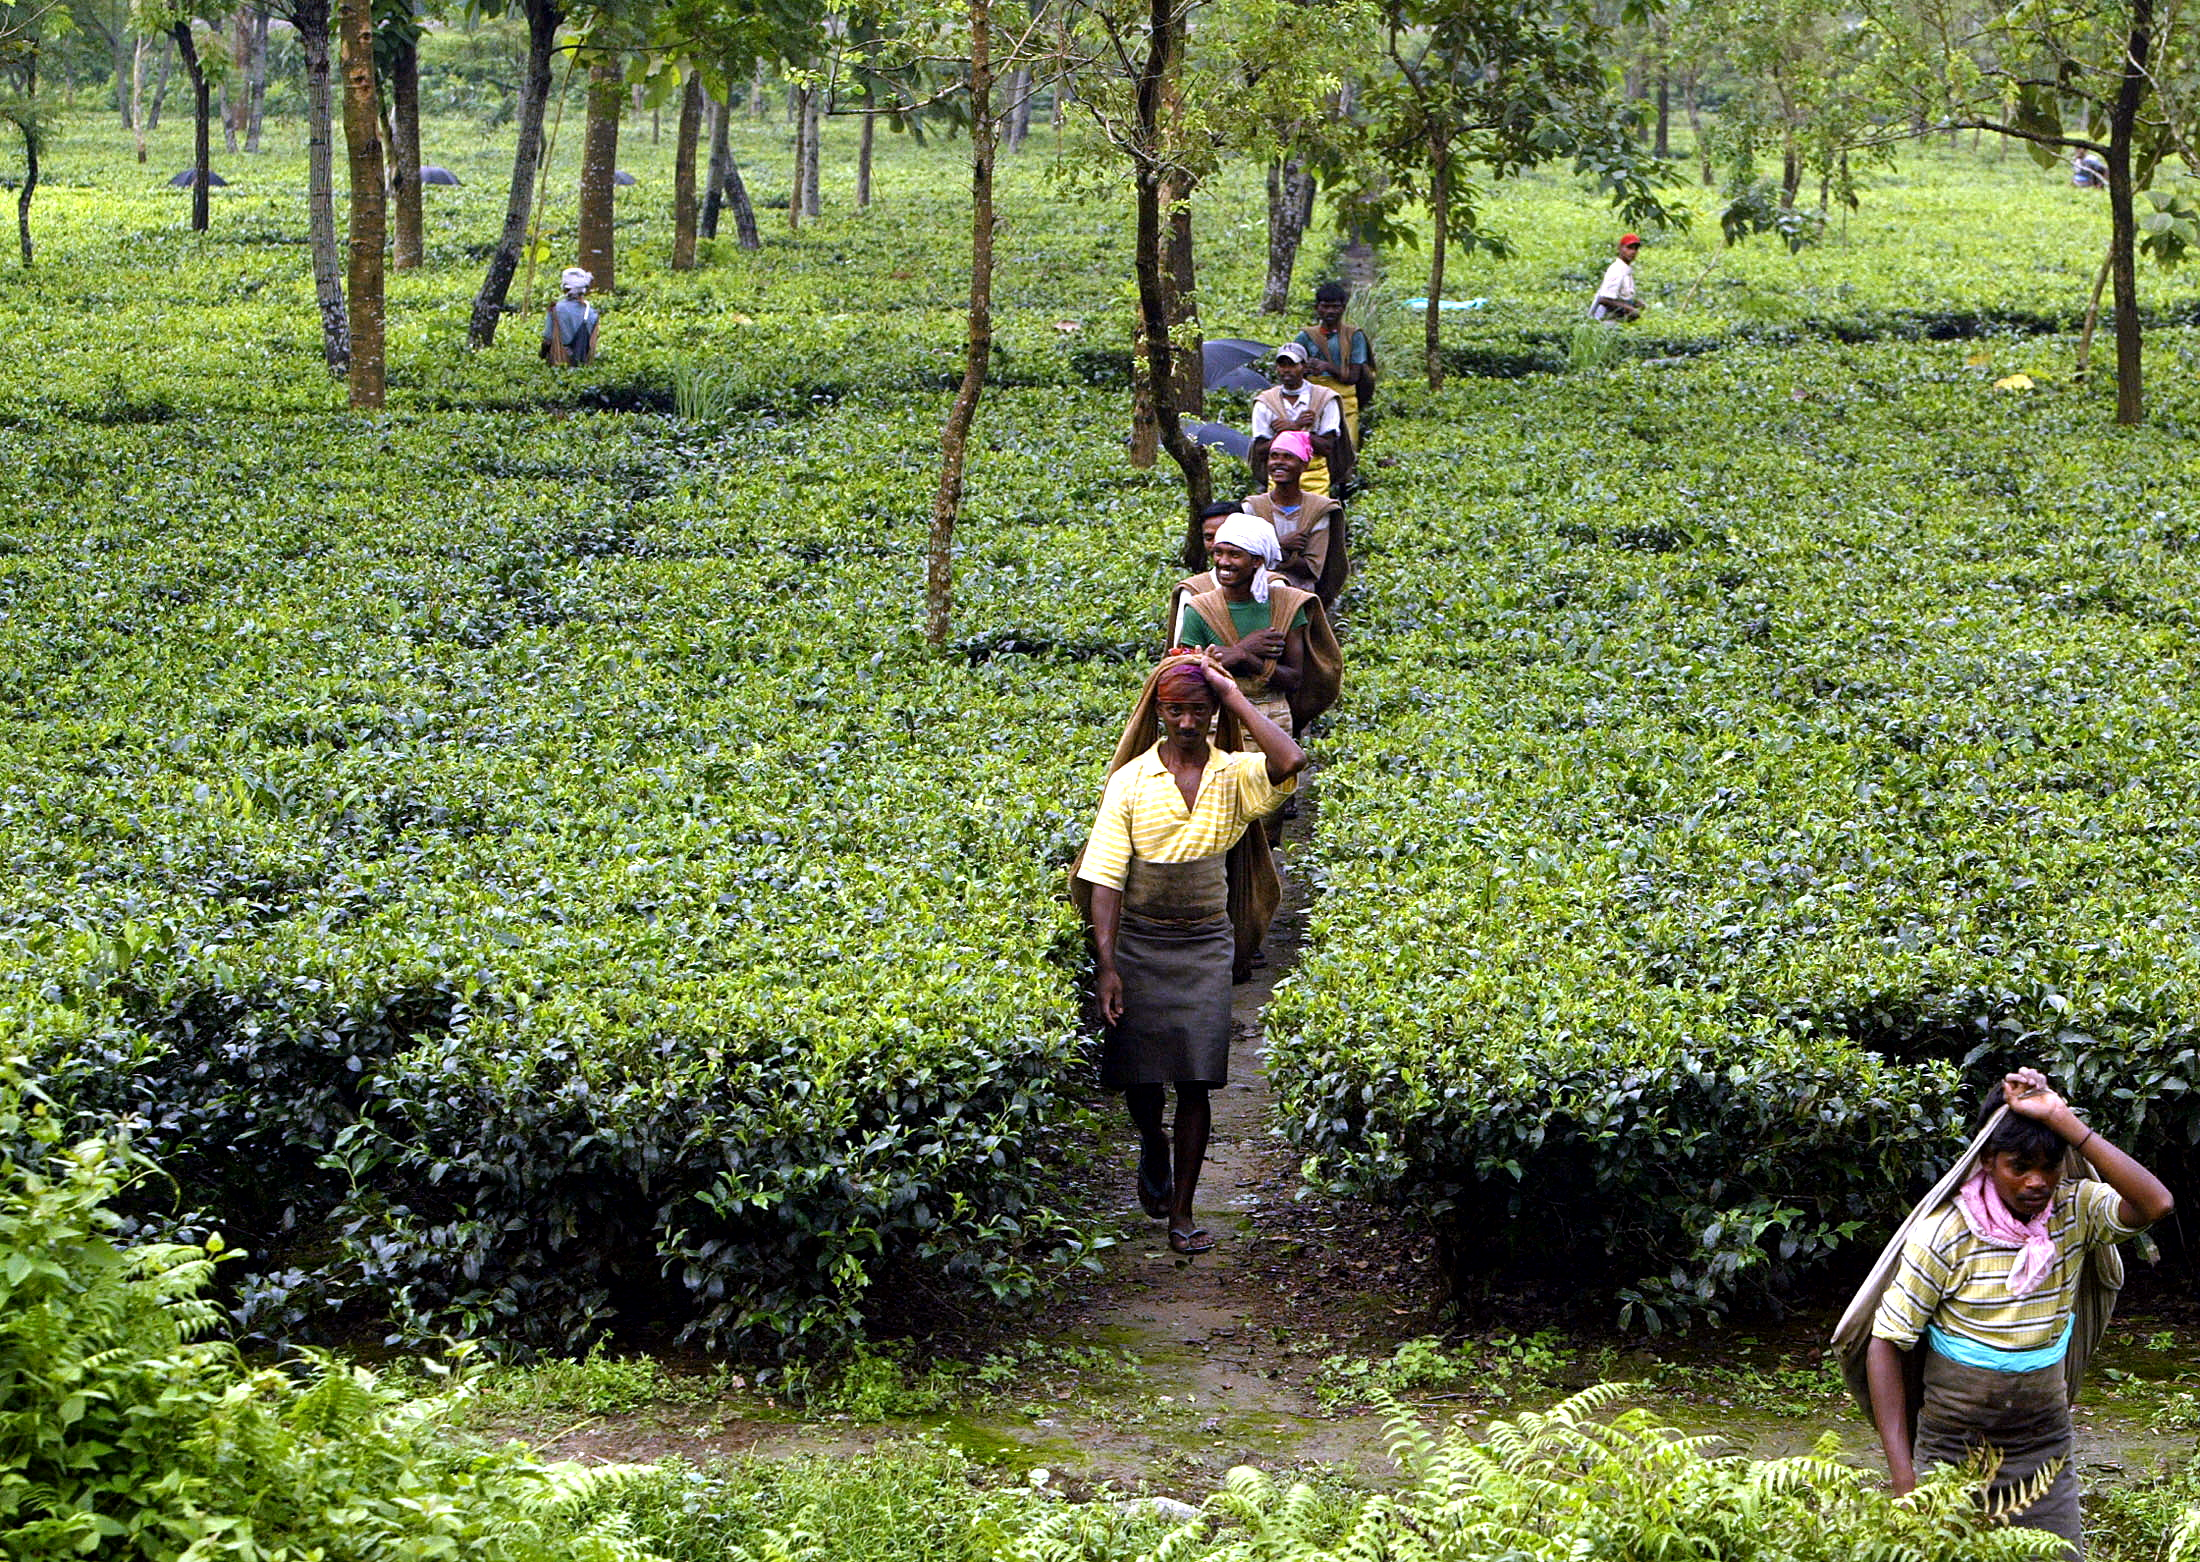 Indian tea pickers arrive for work at a tea estate at Naxalbari in the north eastern state of West Bengal, September 3, 2004. Tea exports had plummeted from 200 kg million in 2002 to 180 million kg last year. The slump in prices and exports was largely attributed to inferior quality of tea being produced by various Indian gardens, besides the loss of Pakistan and Iraq as potential buyers. The Indian tea industry had projected an estimated production of about 850 million kilograms this year. - RTXMWX6